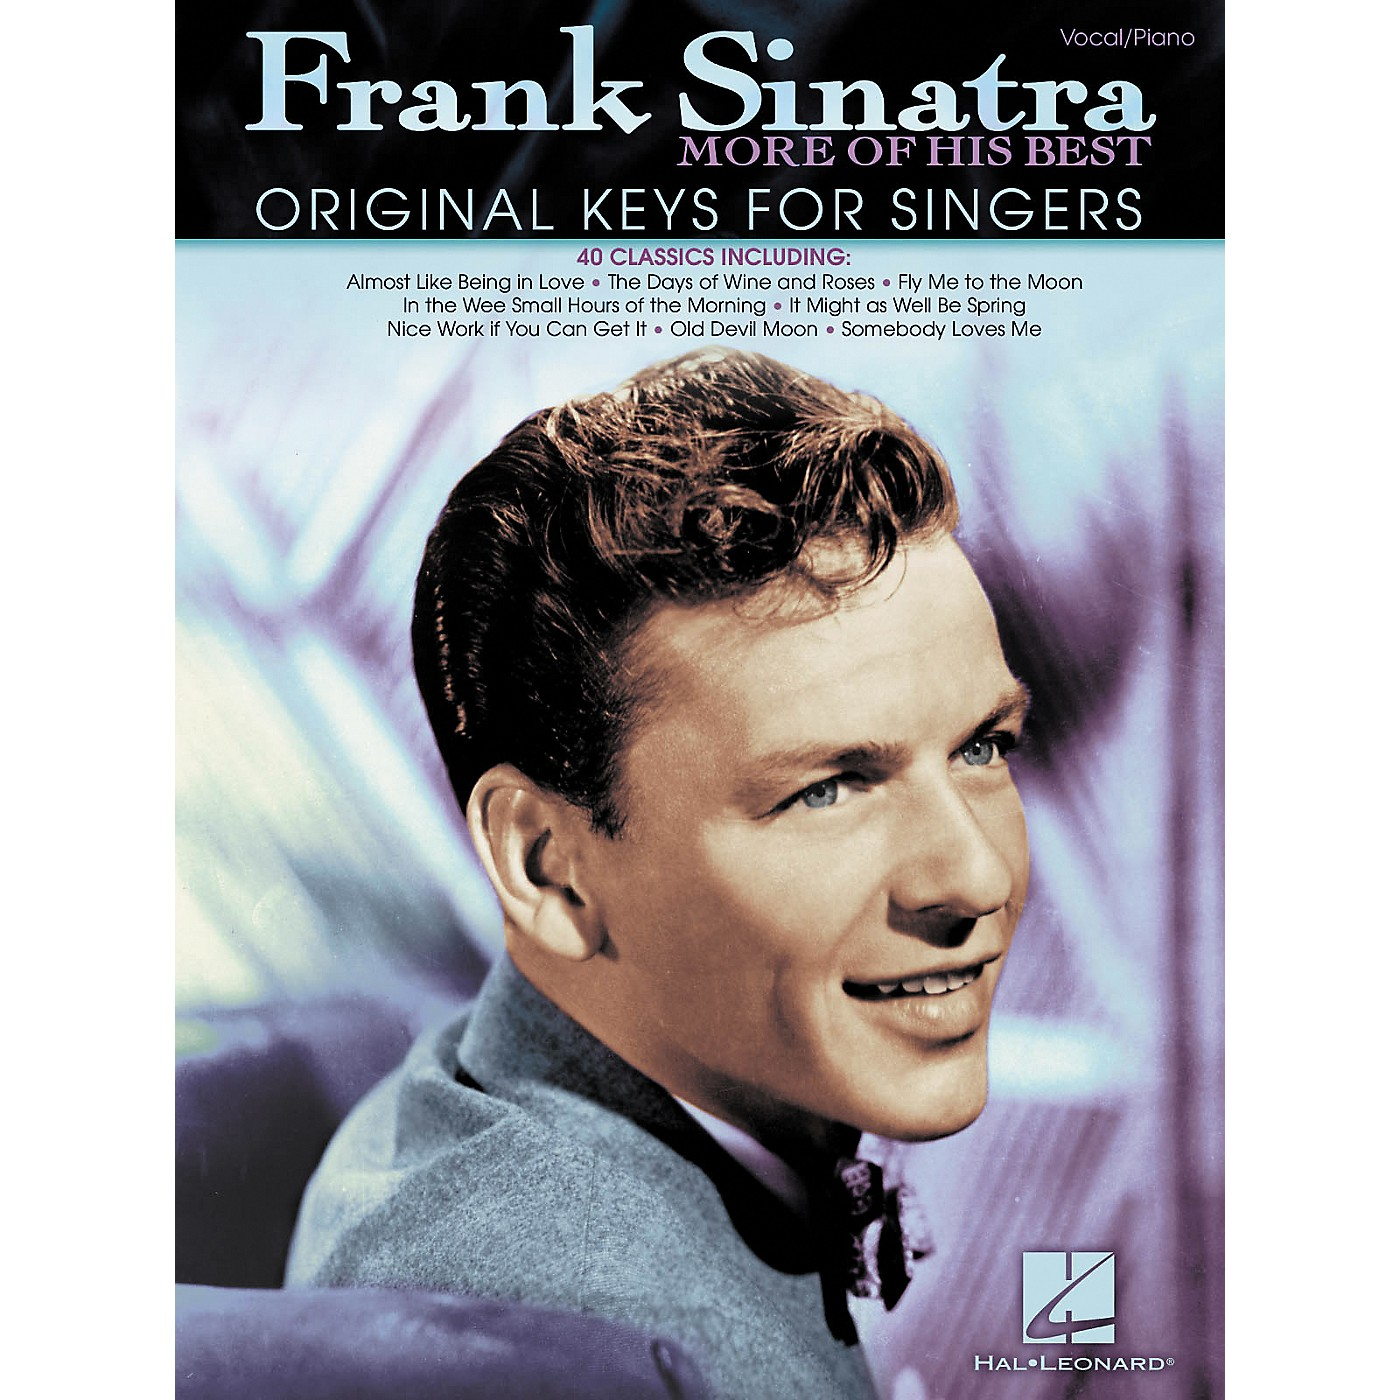 Hal Leonard Frank Sinatra - More Of His Best (Original Keys For Singers) thumbnail